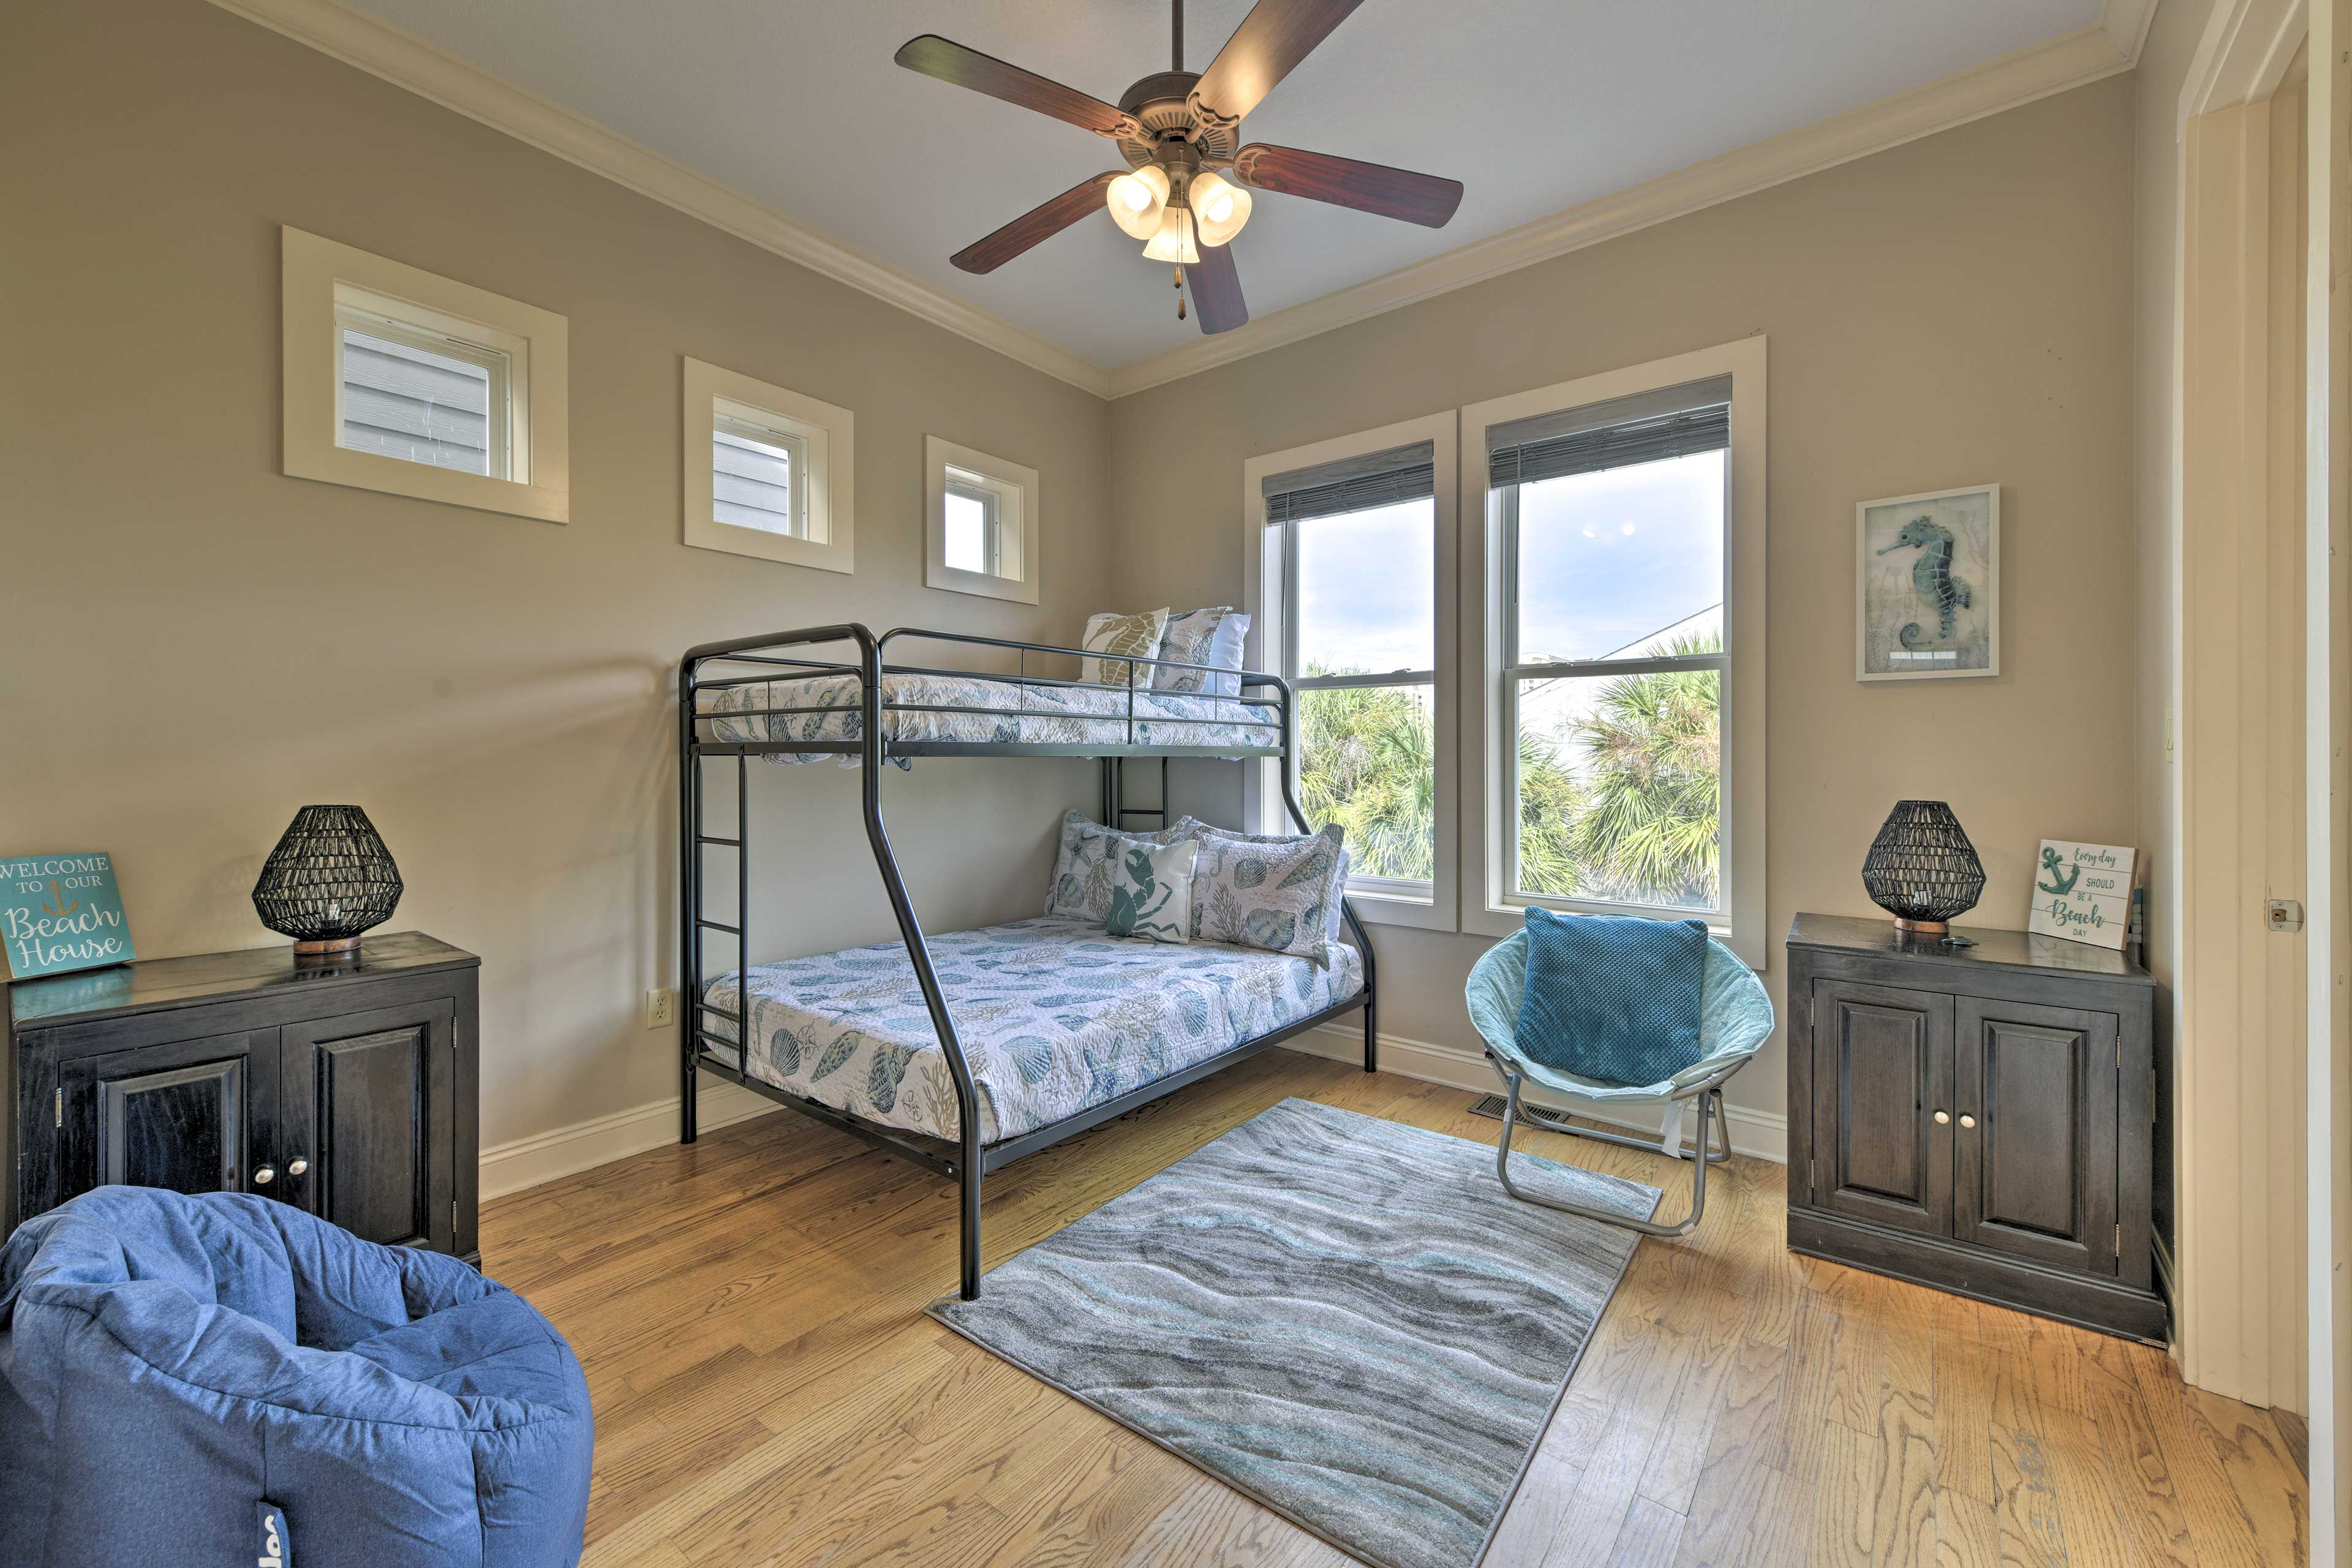 All of the bedrooms are highlighted by beach-themed decor.